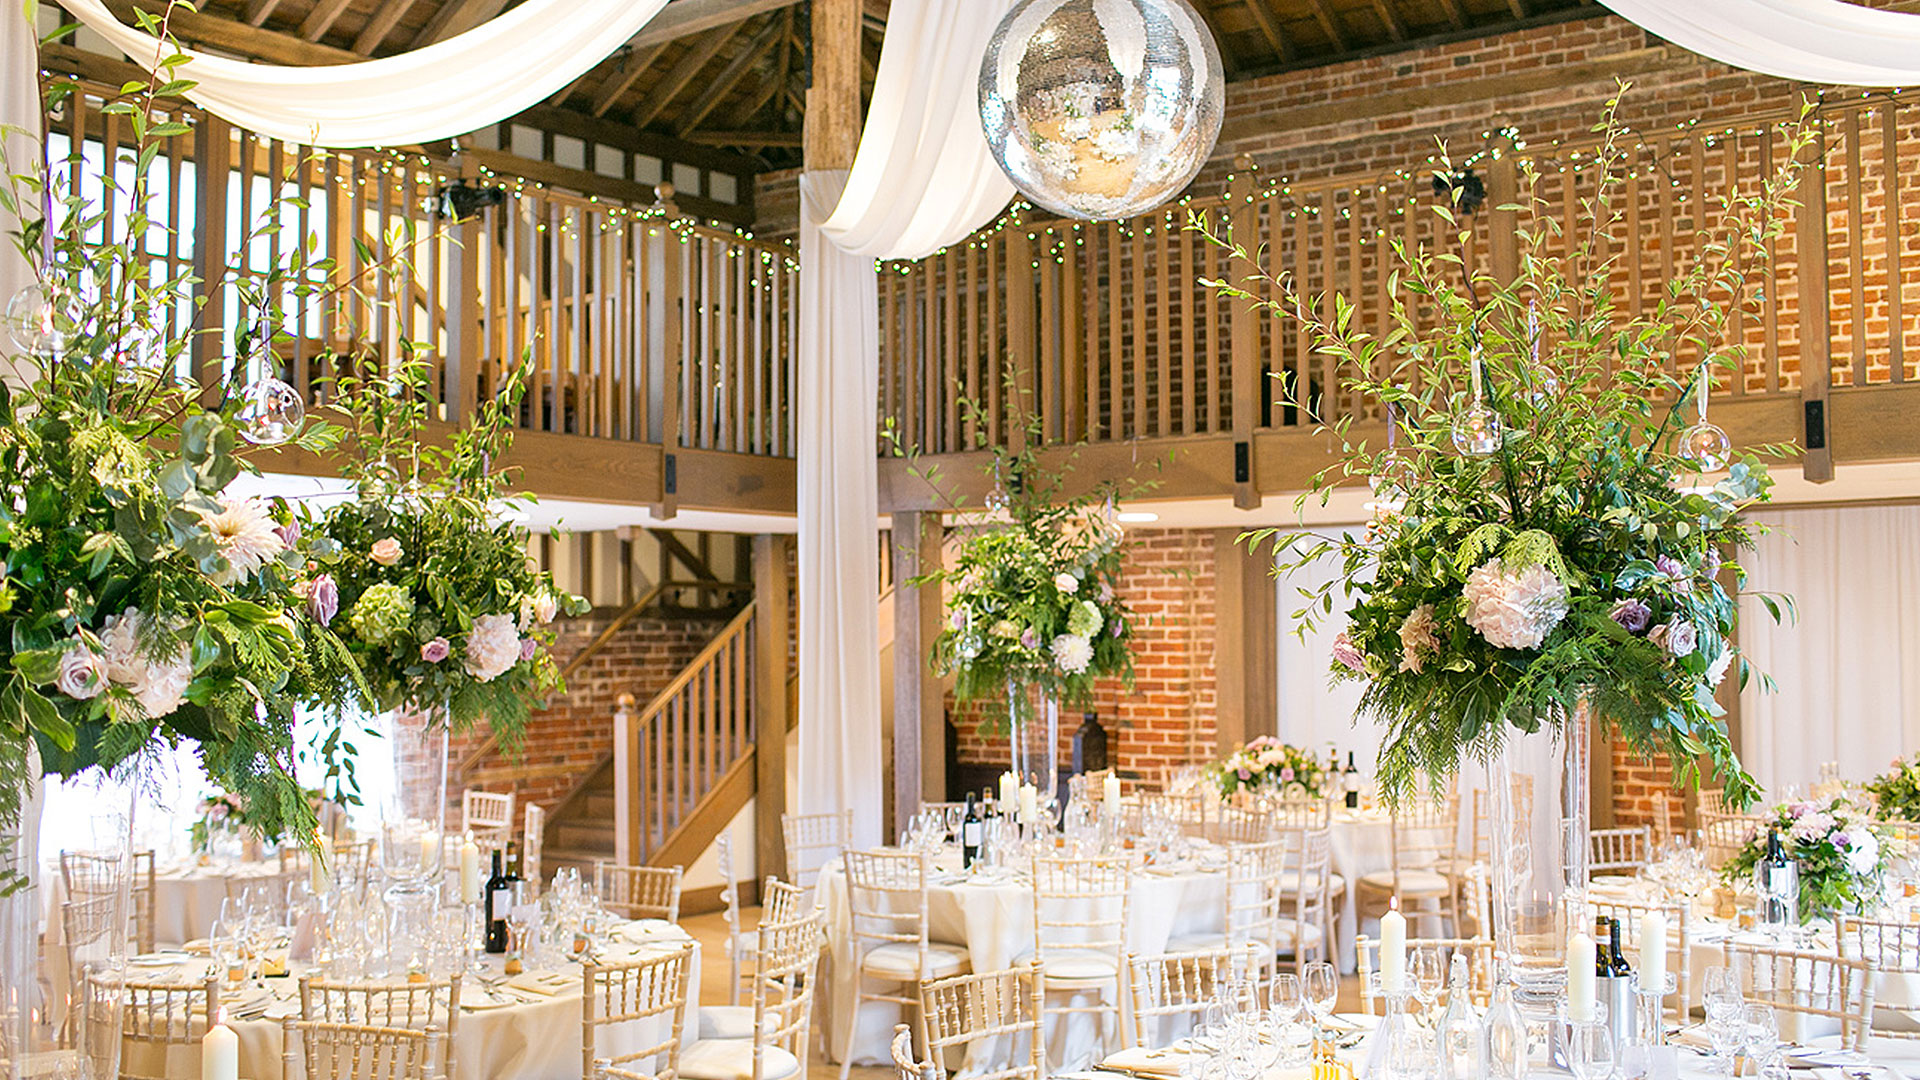 The Mill Barn is decorated with huge flower wedding table centerpieces and drapes from the ceiling